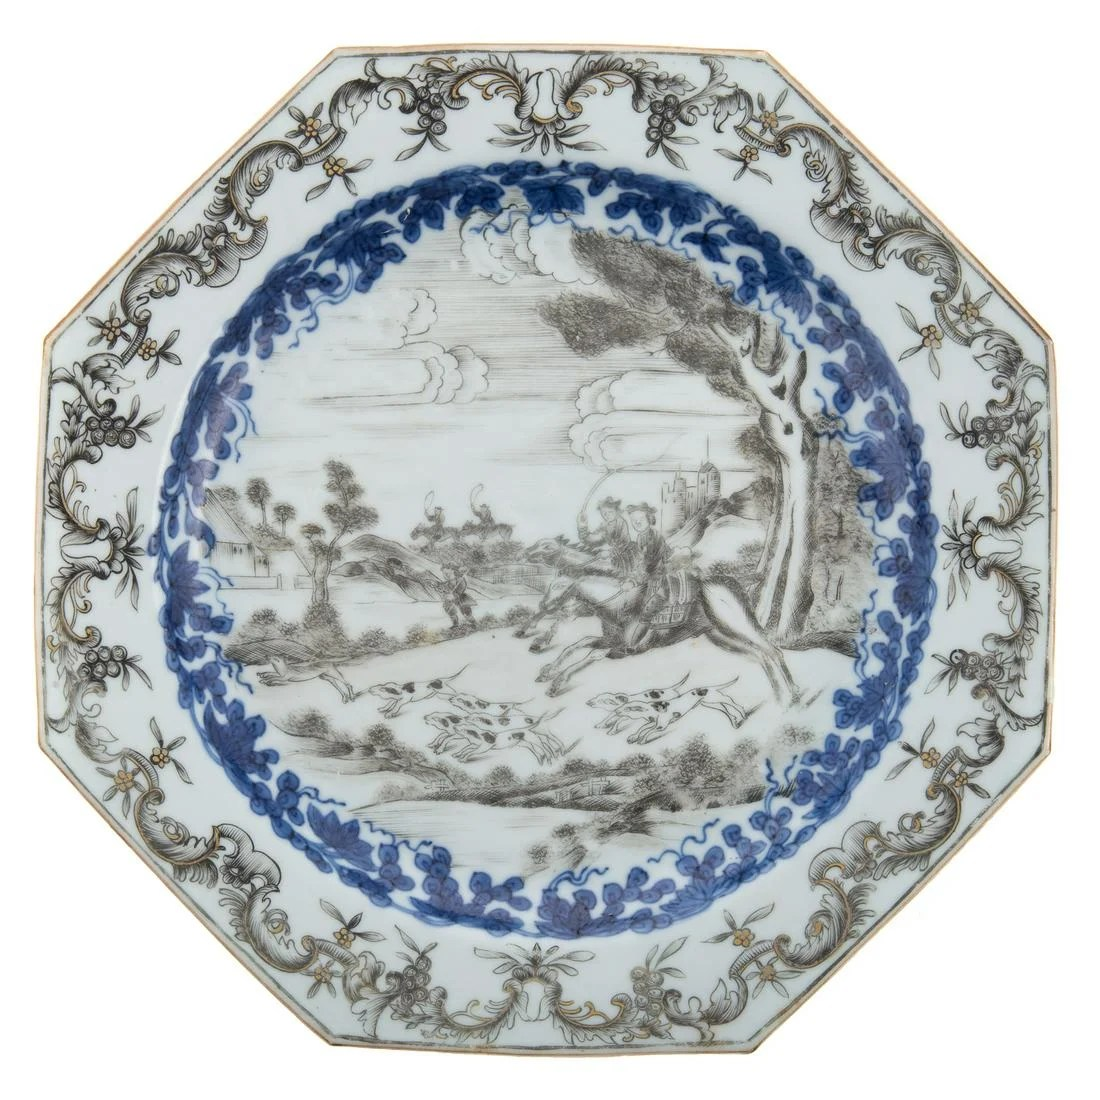 Rare Chinese Export En Grisaille Hunt Plate